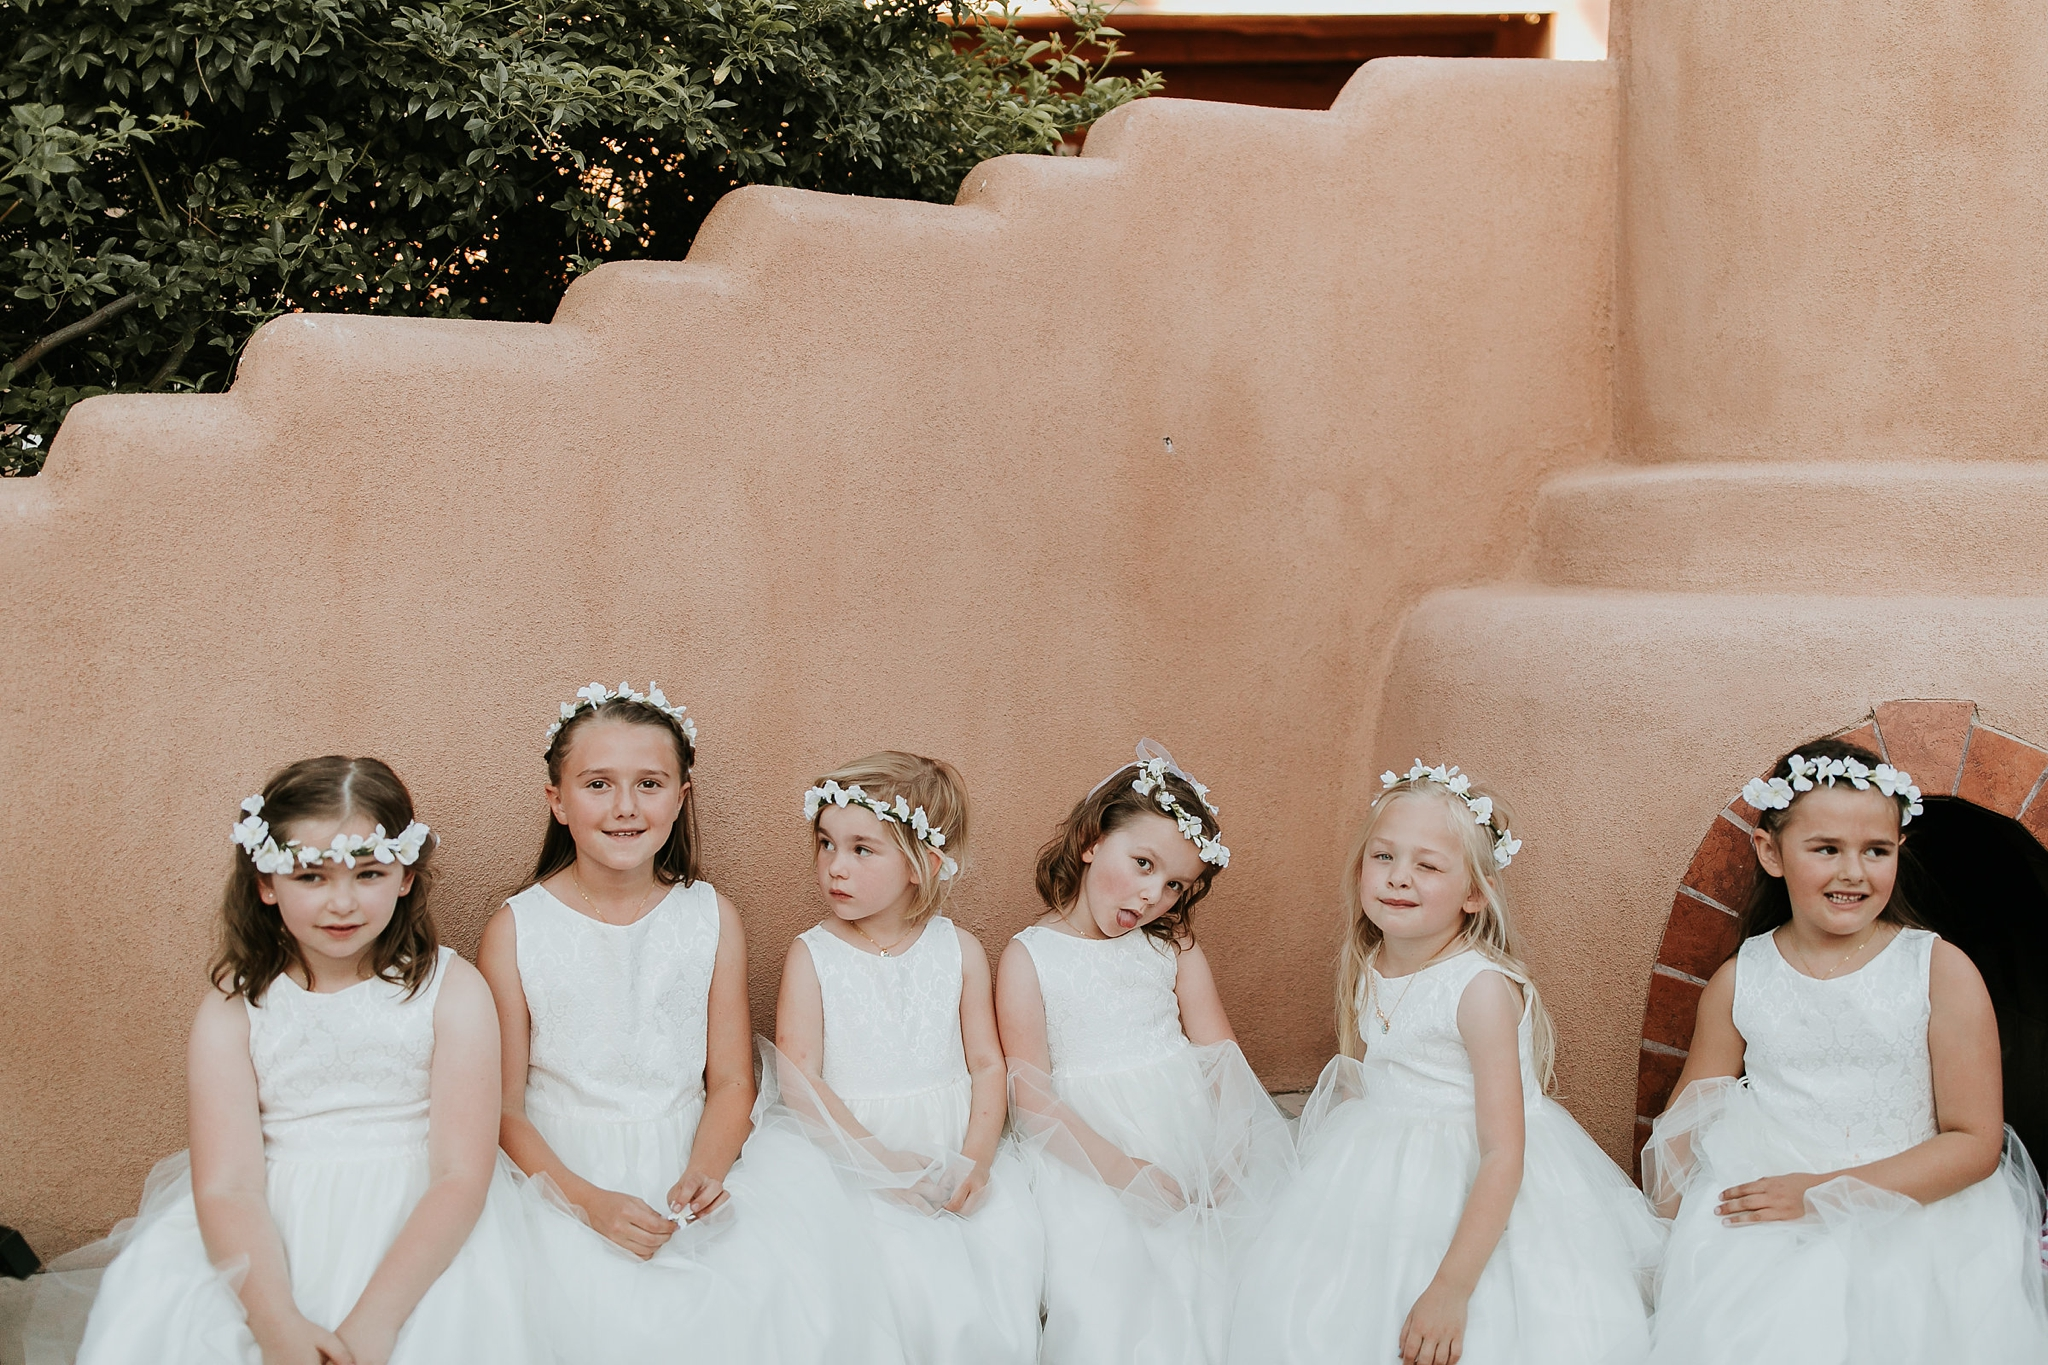 Alicia+lucia+photography+-+albuquerque+wedding+photographer+-+santa+fe+wedding+photography+-+new+mexico+wedding+photographer+-+new+mexico+wedding+-+flower+girl+-+wedding+flower+girl_0050.jpg